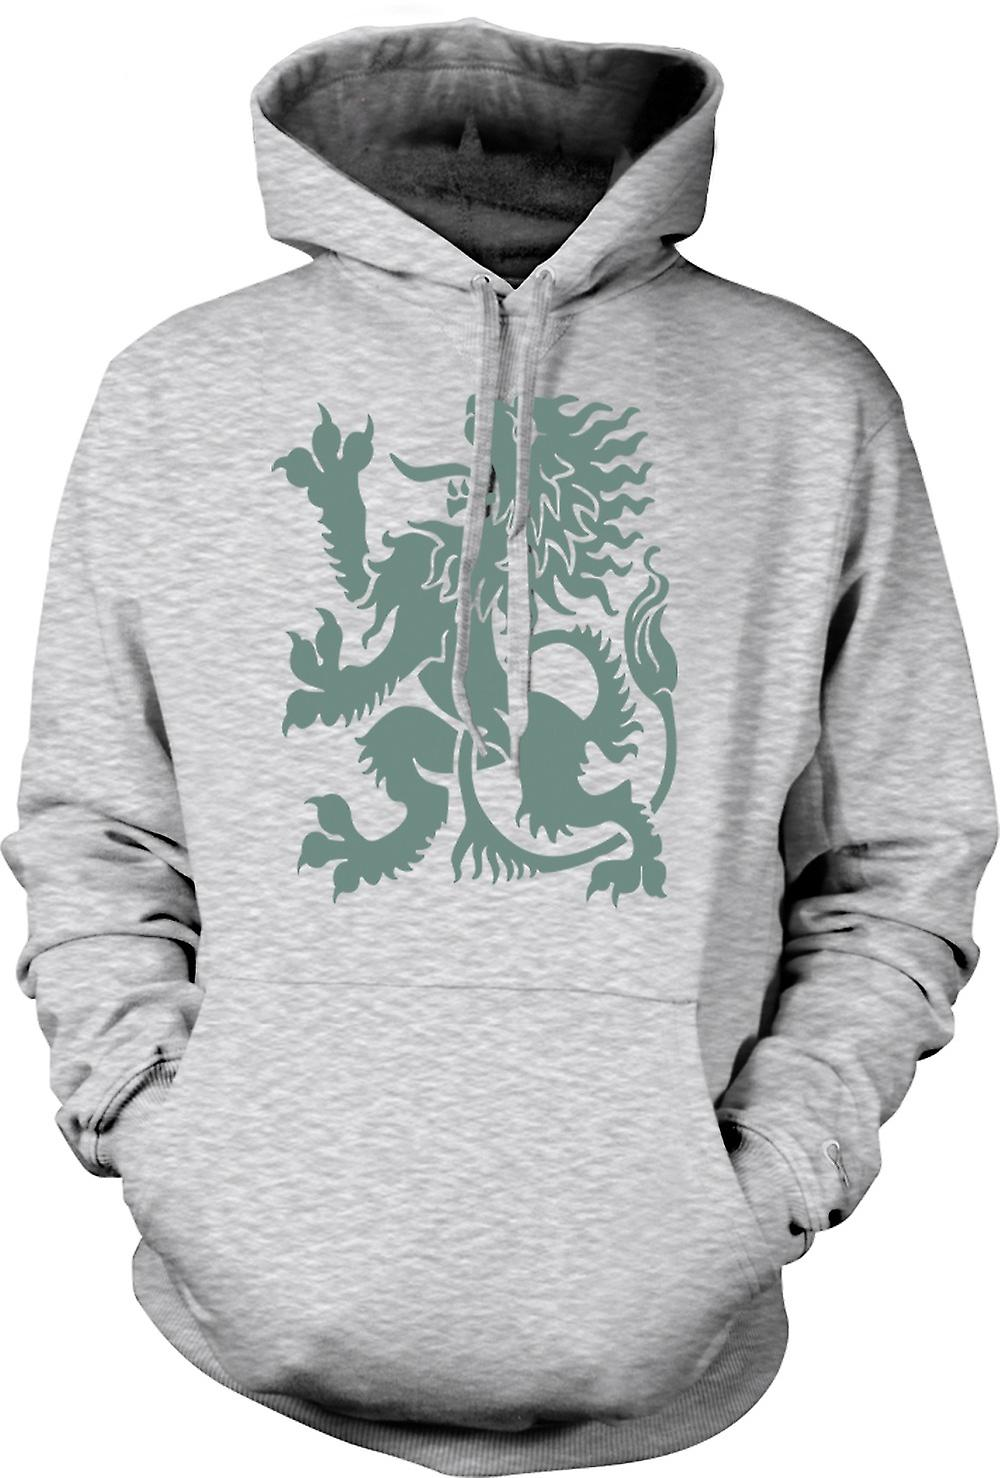 Mens Hoodie - Welsh Dragon - Heraldy - Cool